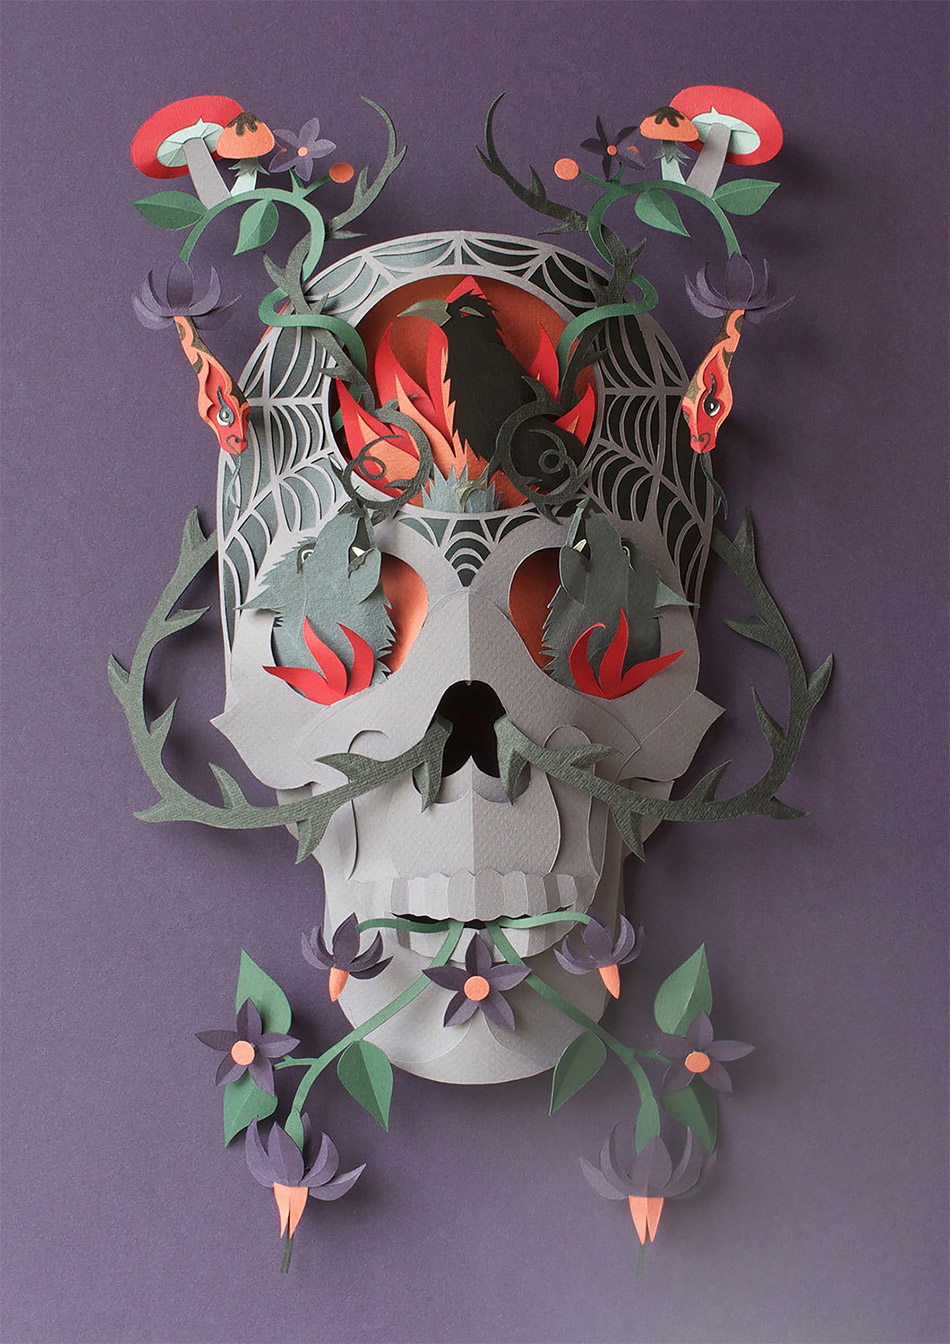 Intricate Layered Paper Scenes by Helen Musselwhite